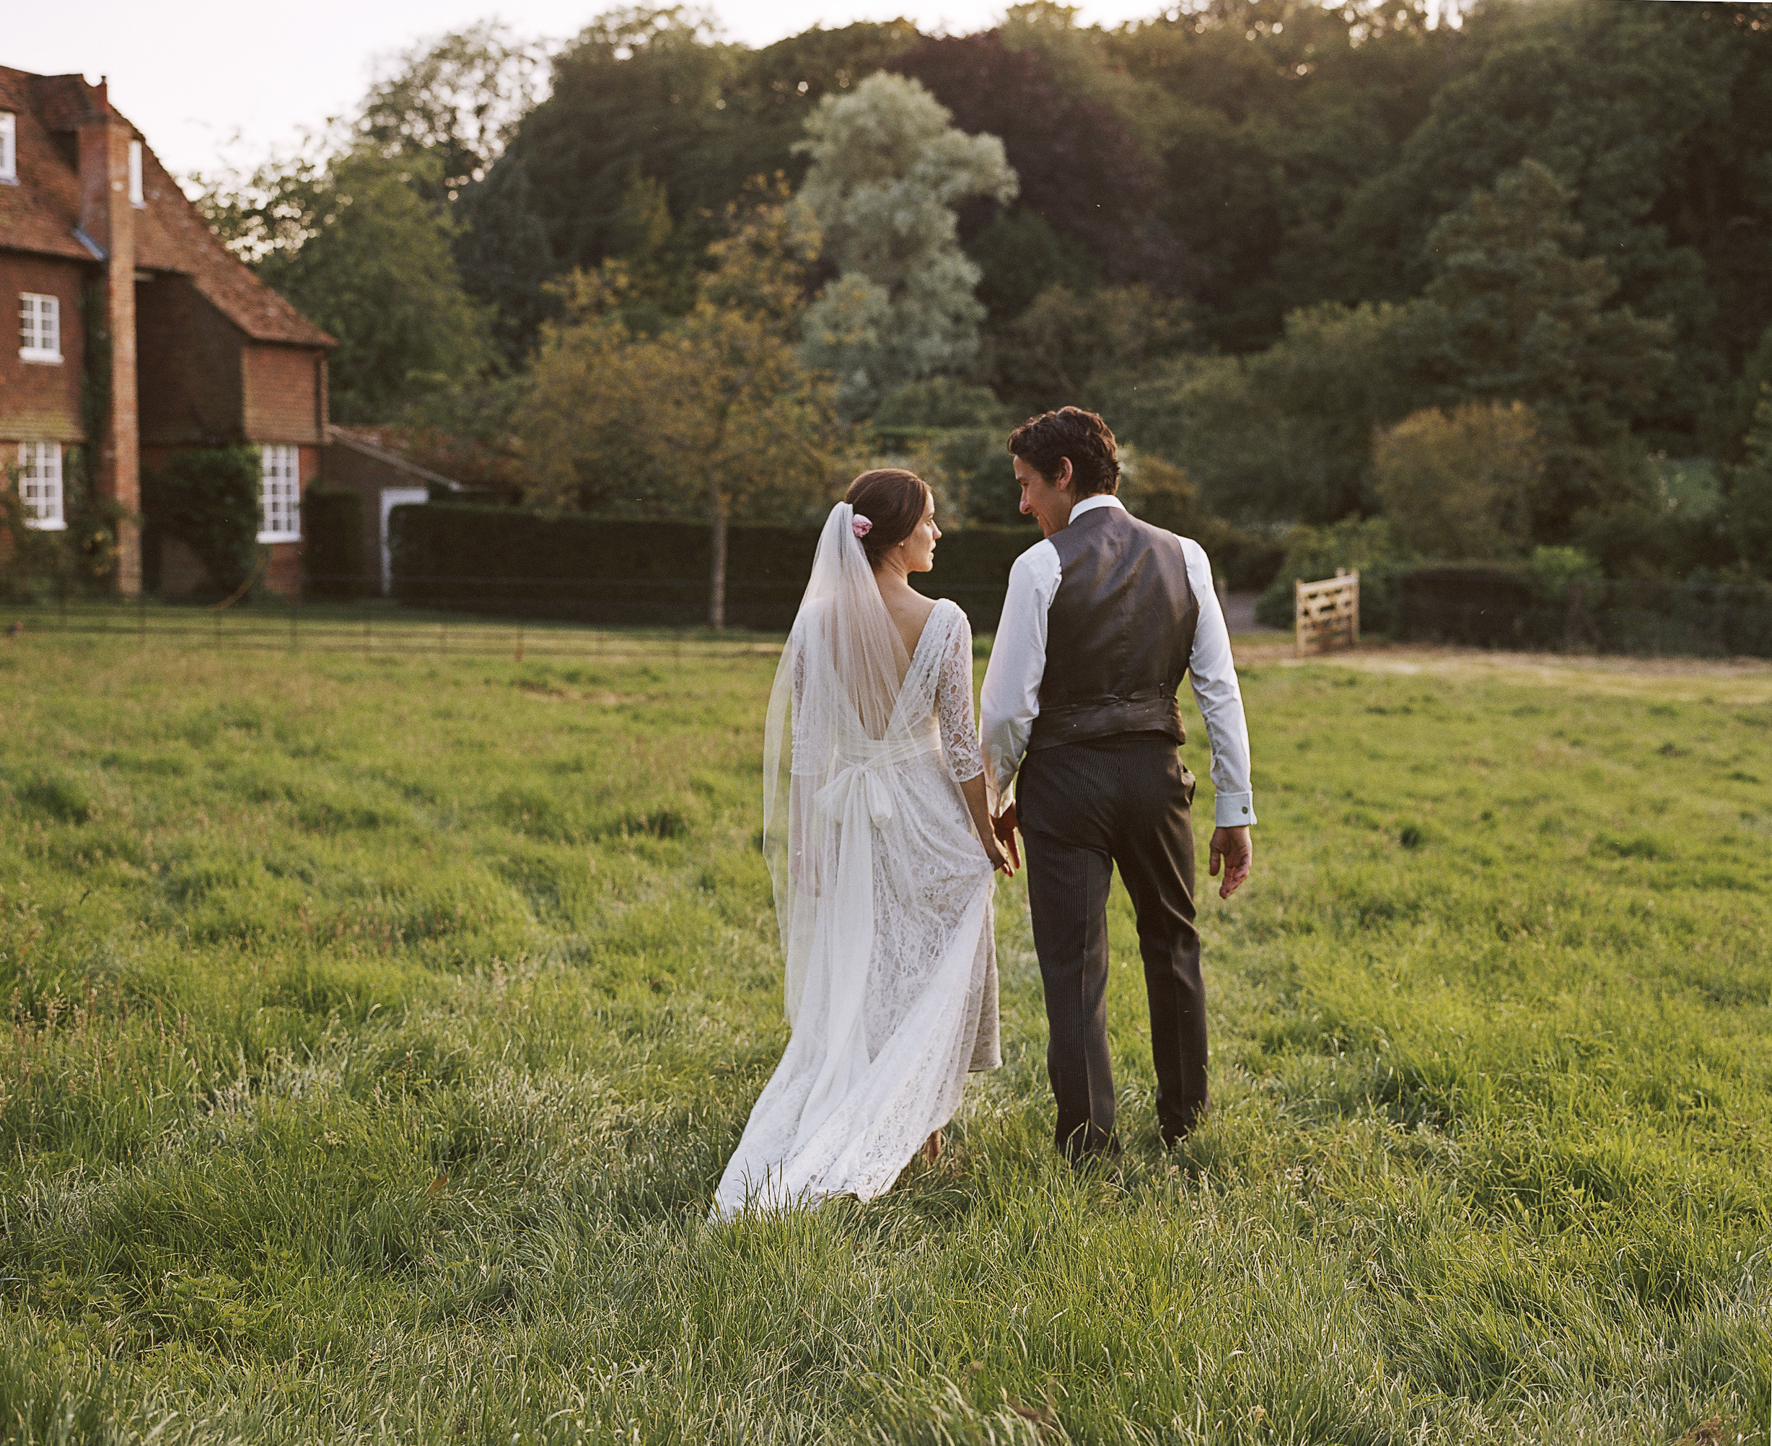 Wedding example_R&O_Rachel & Oli_Weddingday_90740002_.jpg